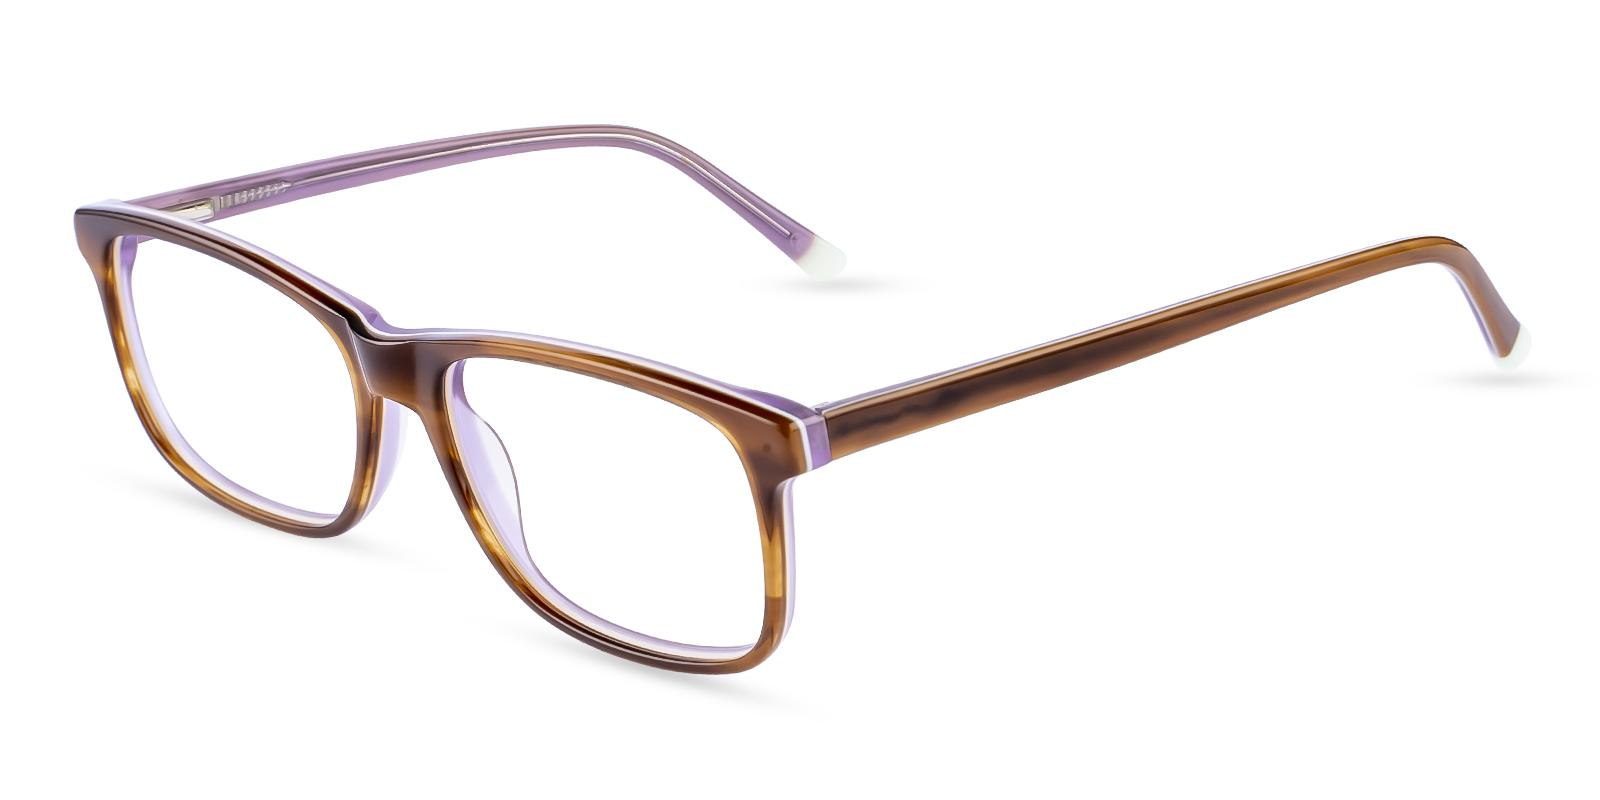 Gilcres Brown Acetate Eyeglasses , SpringHinges , UniversalBridgeFit Frames from ABBE Glasses